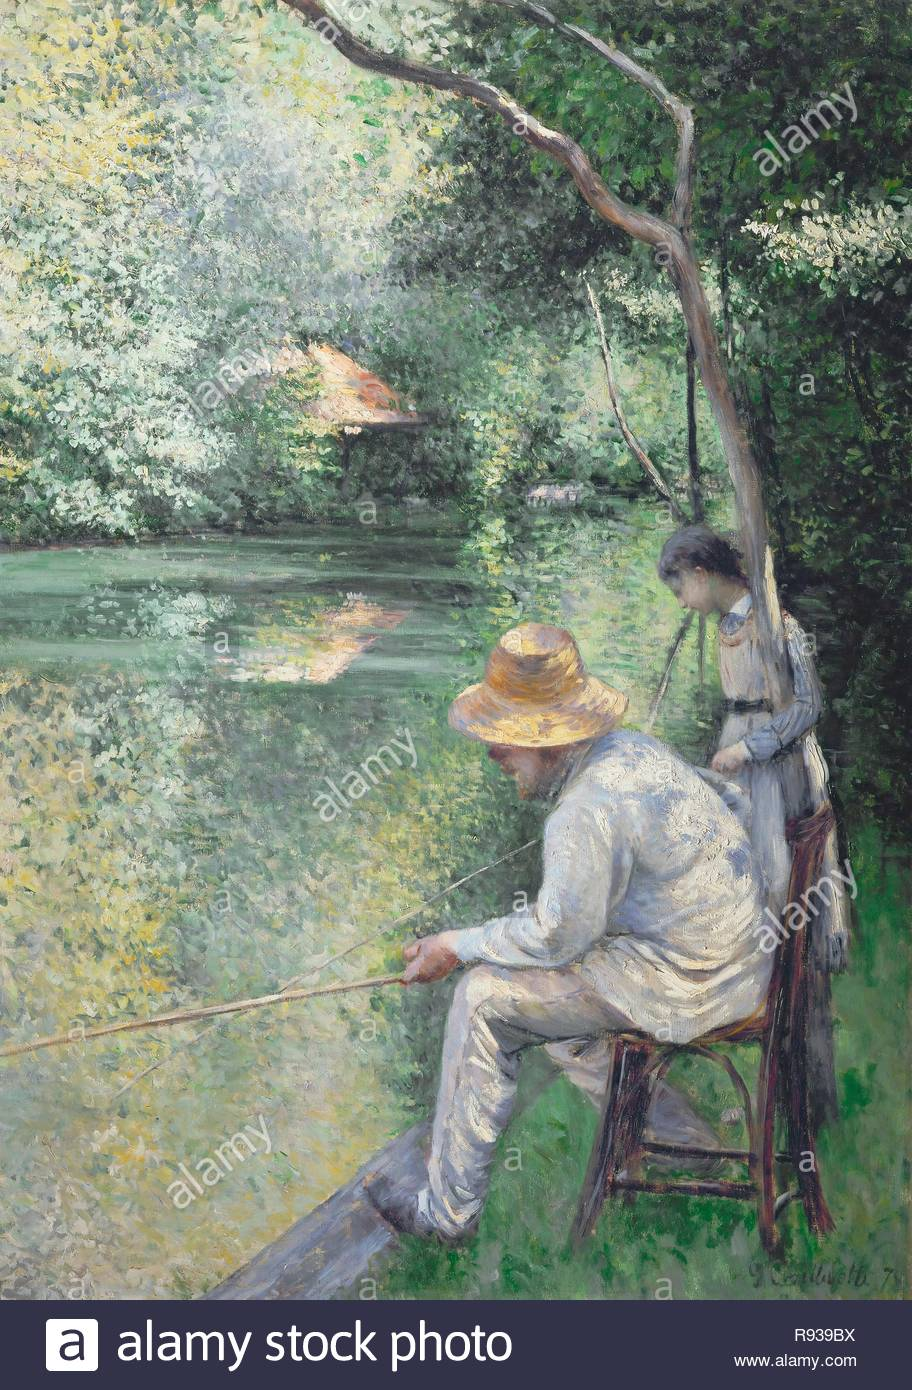 Peche a la ligne-Angling, 1878 Oil on canvas, 157 x 113 cm. Author: CAILLEBOTTE, GUSTAVE. Location: Private Collection,, France. - Stock Image